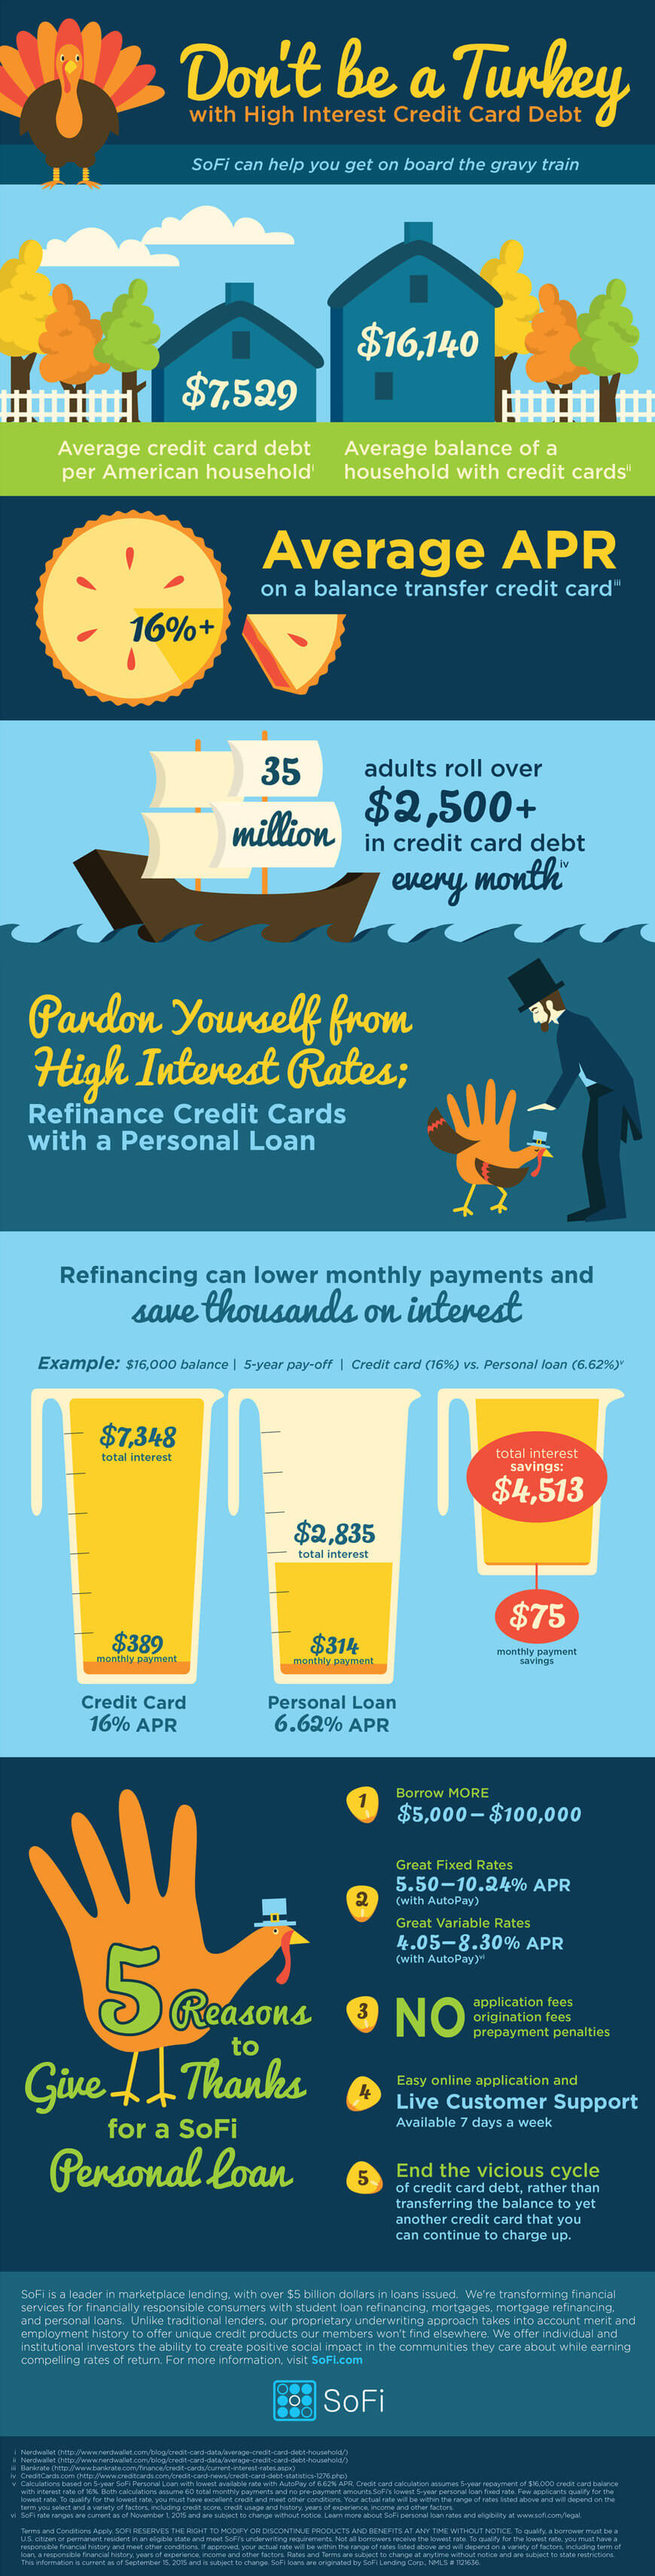 pay-off-credit-card-debt-infographic